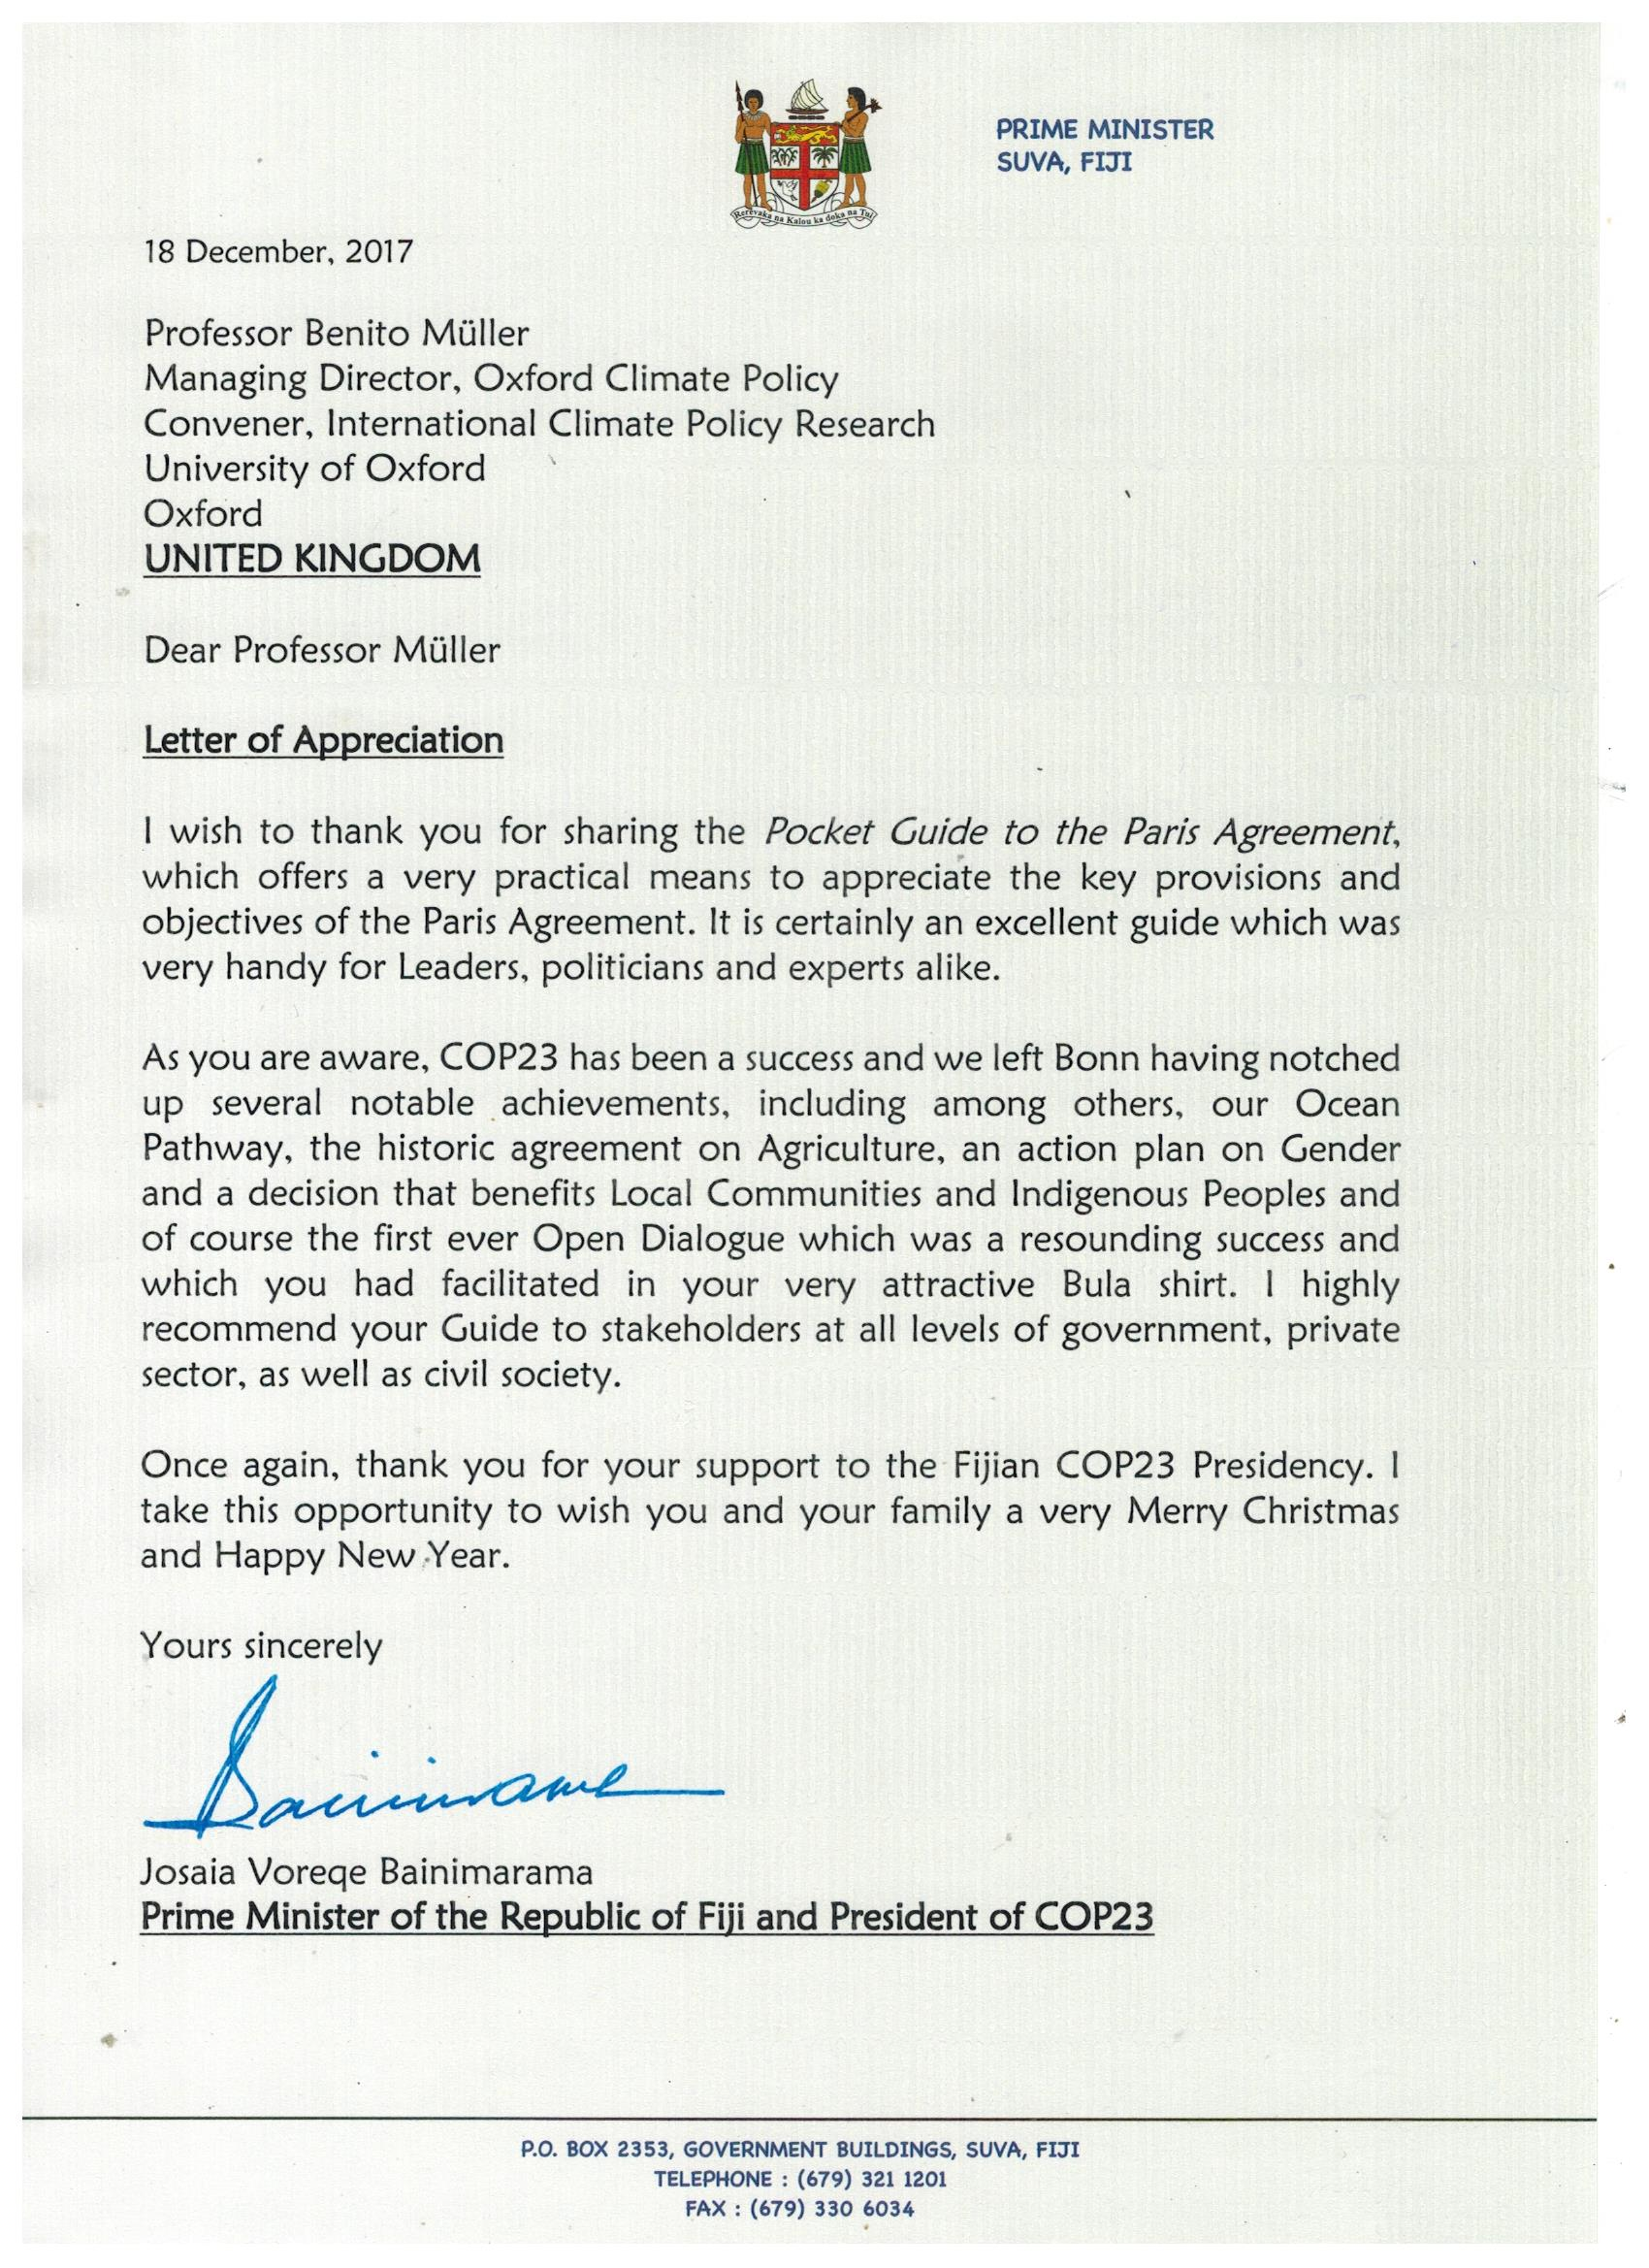 Letter Of Appreciation From The Prime Minister Of Fiji And President Of Cop23 Www Ecbi Org